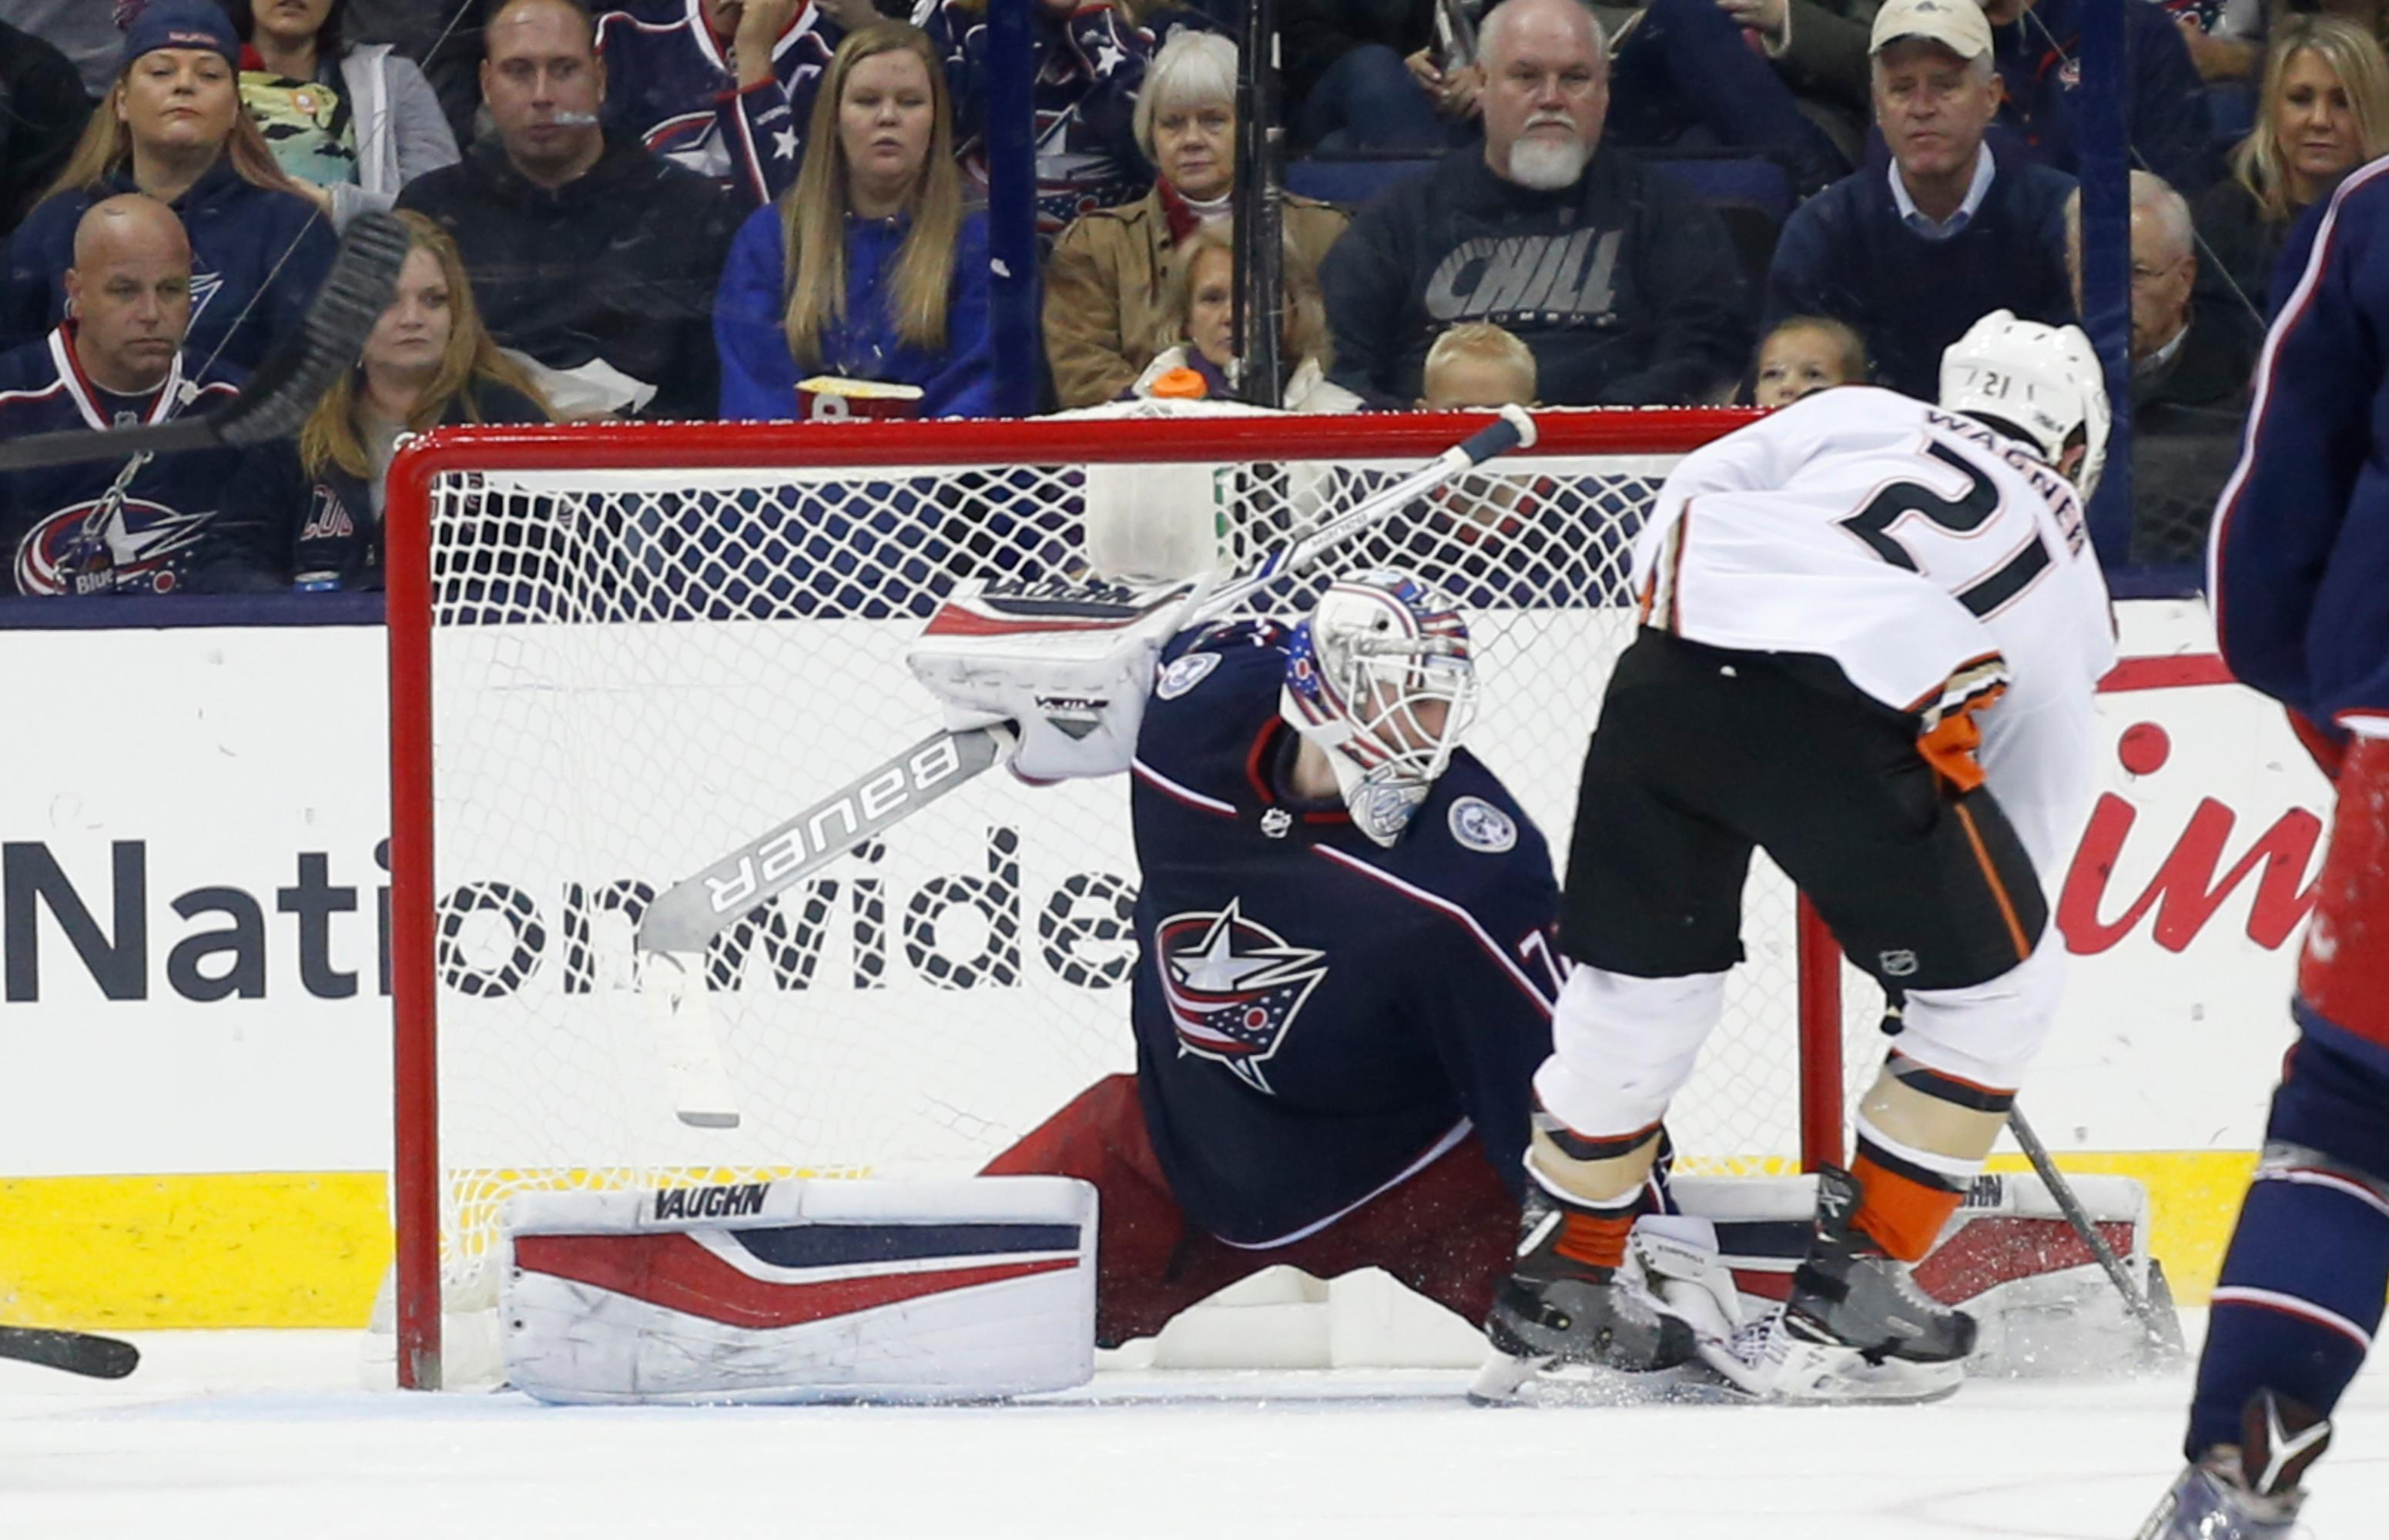 Columbus Blue Jackets' Joonas Korpisalo, left, of Finland, makes a save against Anaheim Ducks' Chris Wagner during the second period of an NHL hockey game Friday, Dec. 1, 2017, in Columbus, Ohio. (AP Photo/Jay LaPrete)